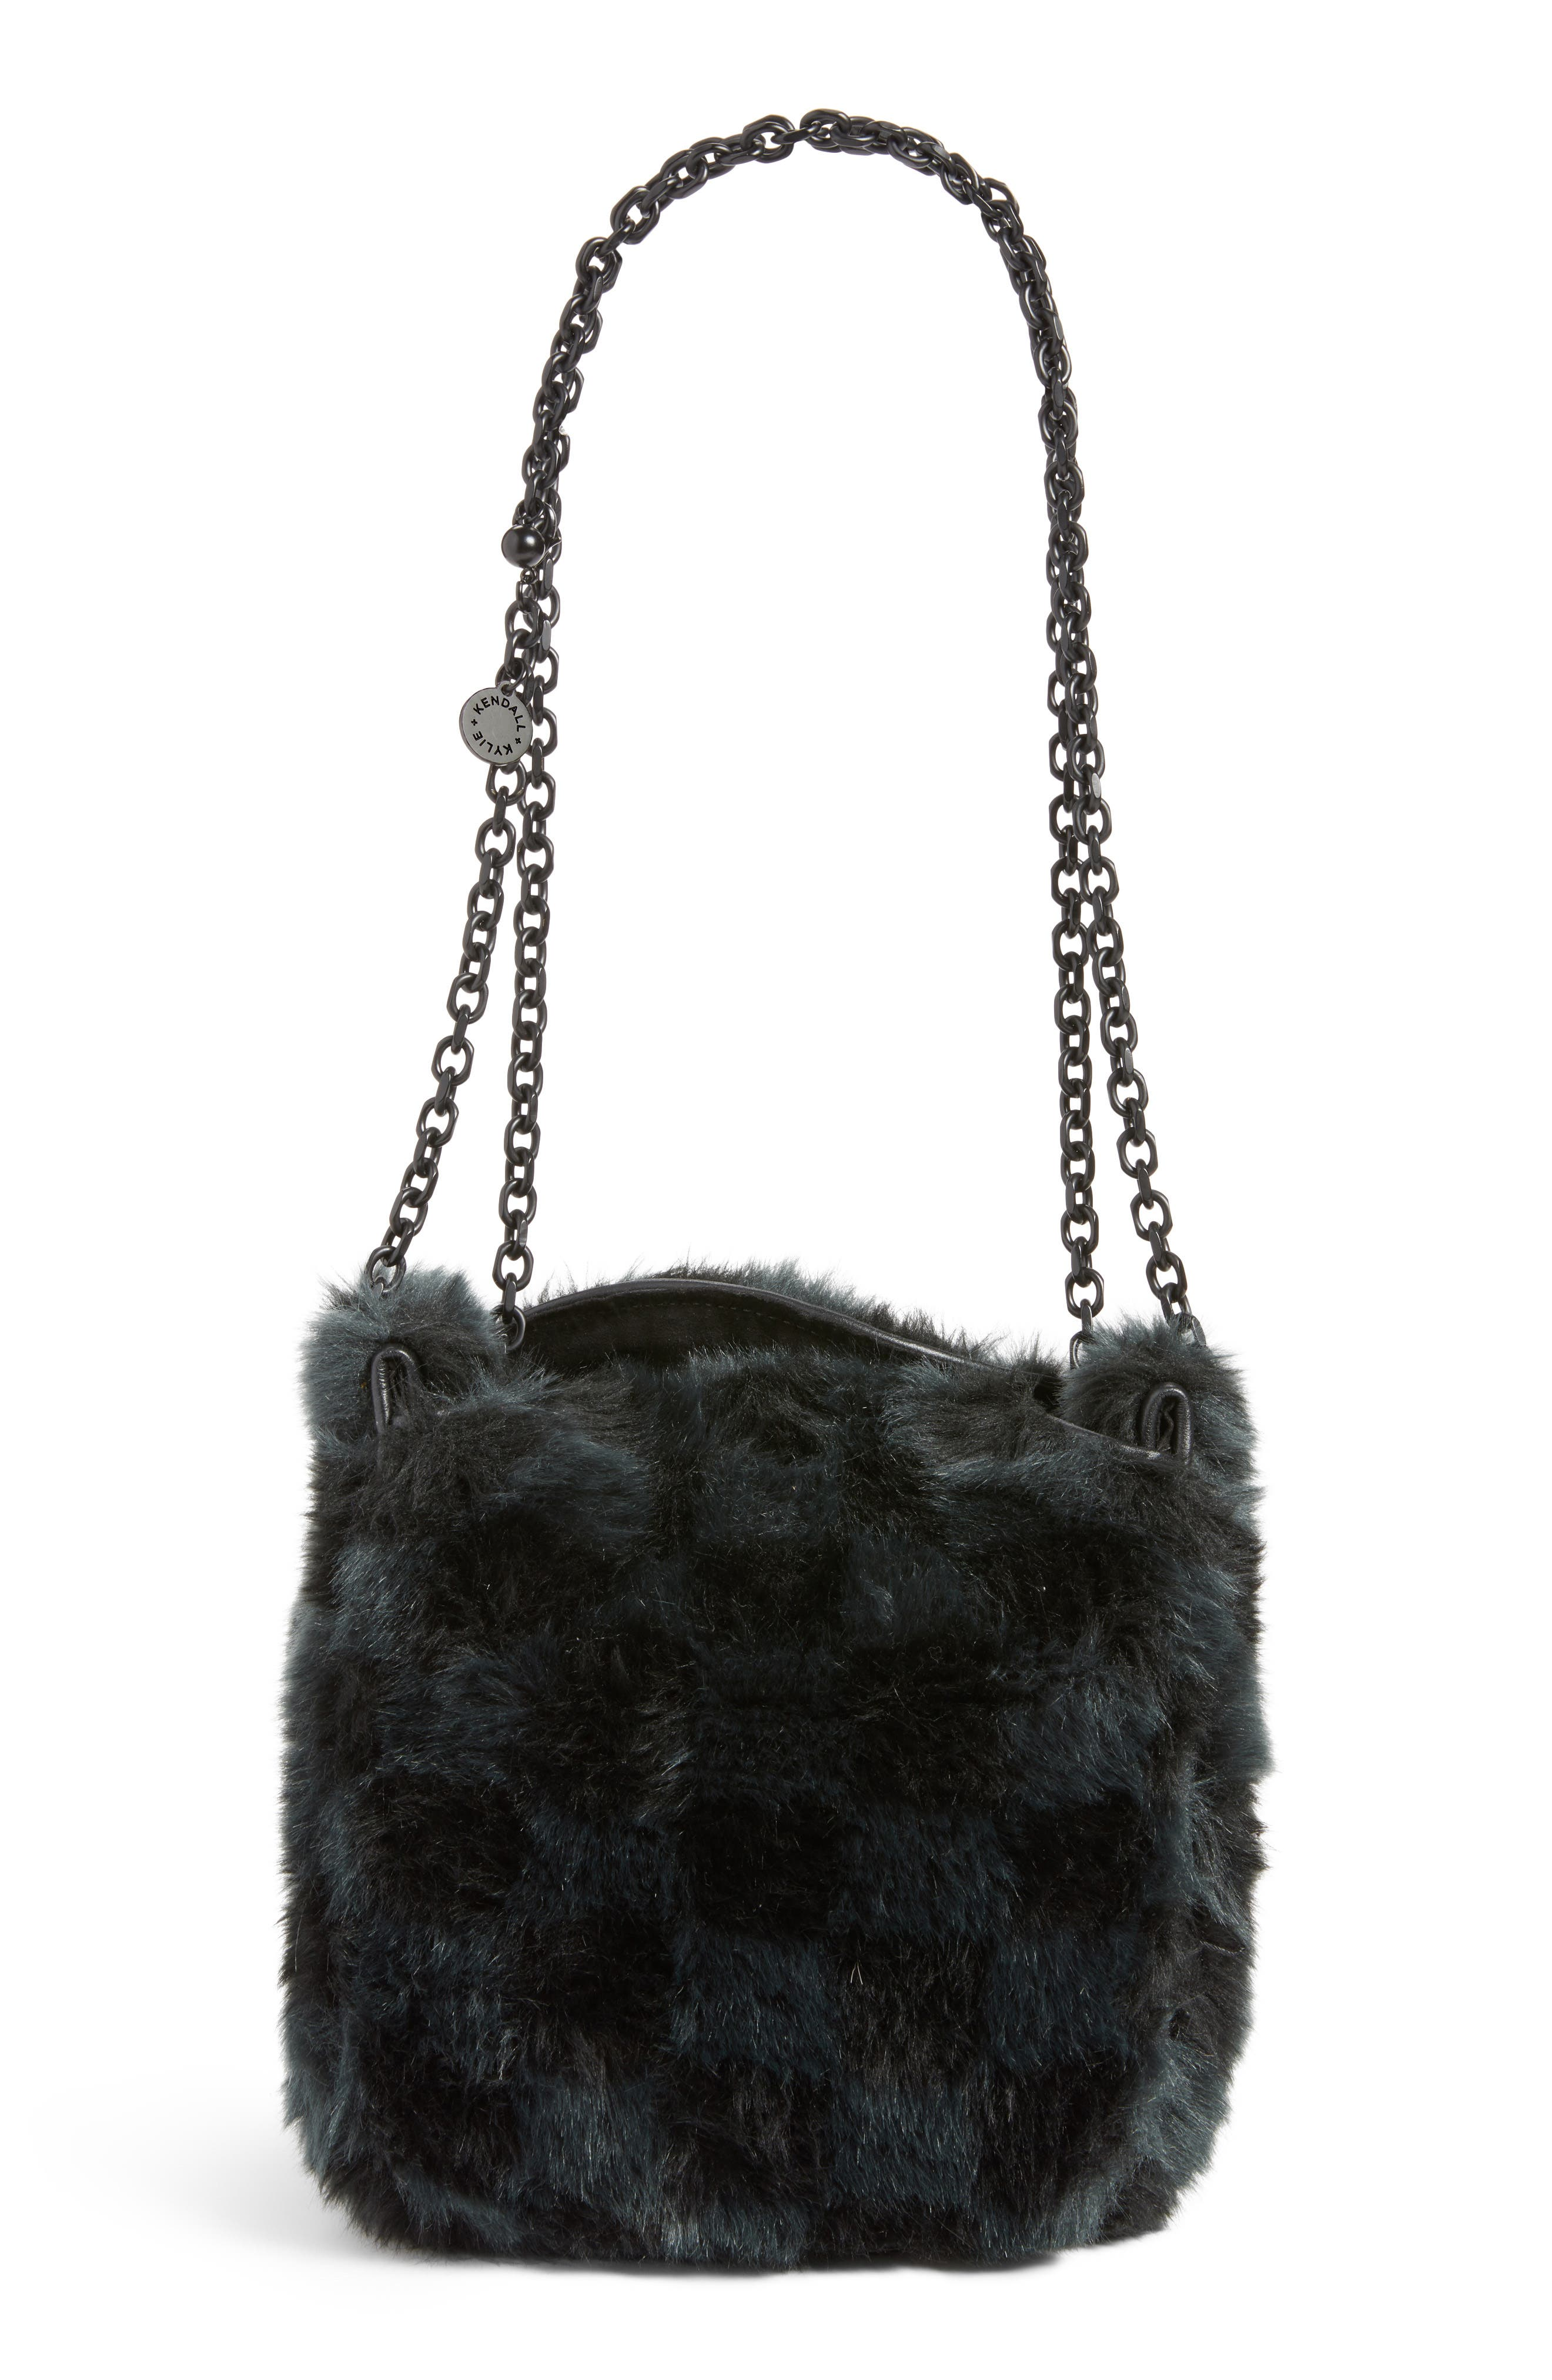 KENDALL + KYLIE Faux Fur Bucket Bag